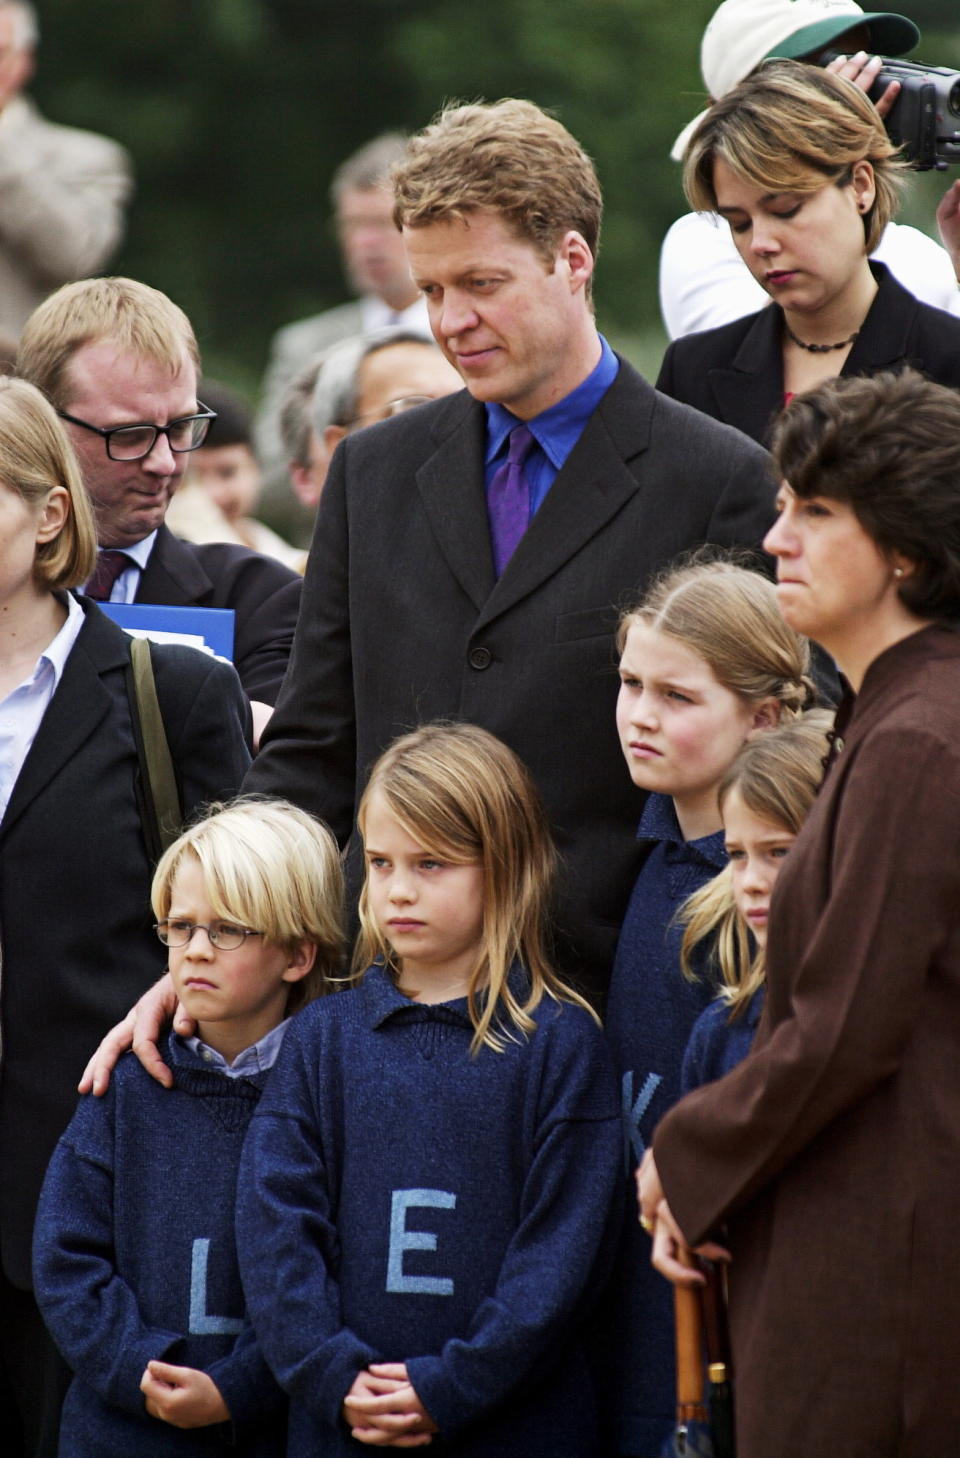 LONDON, UNITED KINGDOM - JUNE 30:  Charles,earl Spencer, Brother Of The Princess Of Wales,  With His Children At Opening Of The Princess Of Wales Memorial Playground In Kensington Gardens In London.  L To R: Louis [ Viscount Althorp ], Eliza, Kitty, Amelia  (Photo by Tim Graham Photo Library via Getty Images)